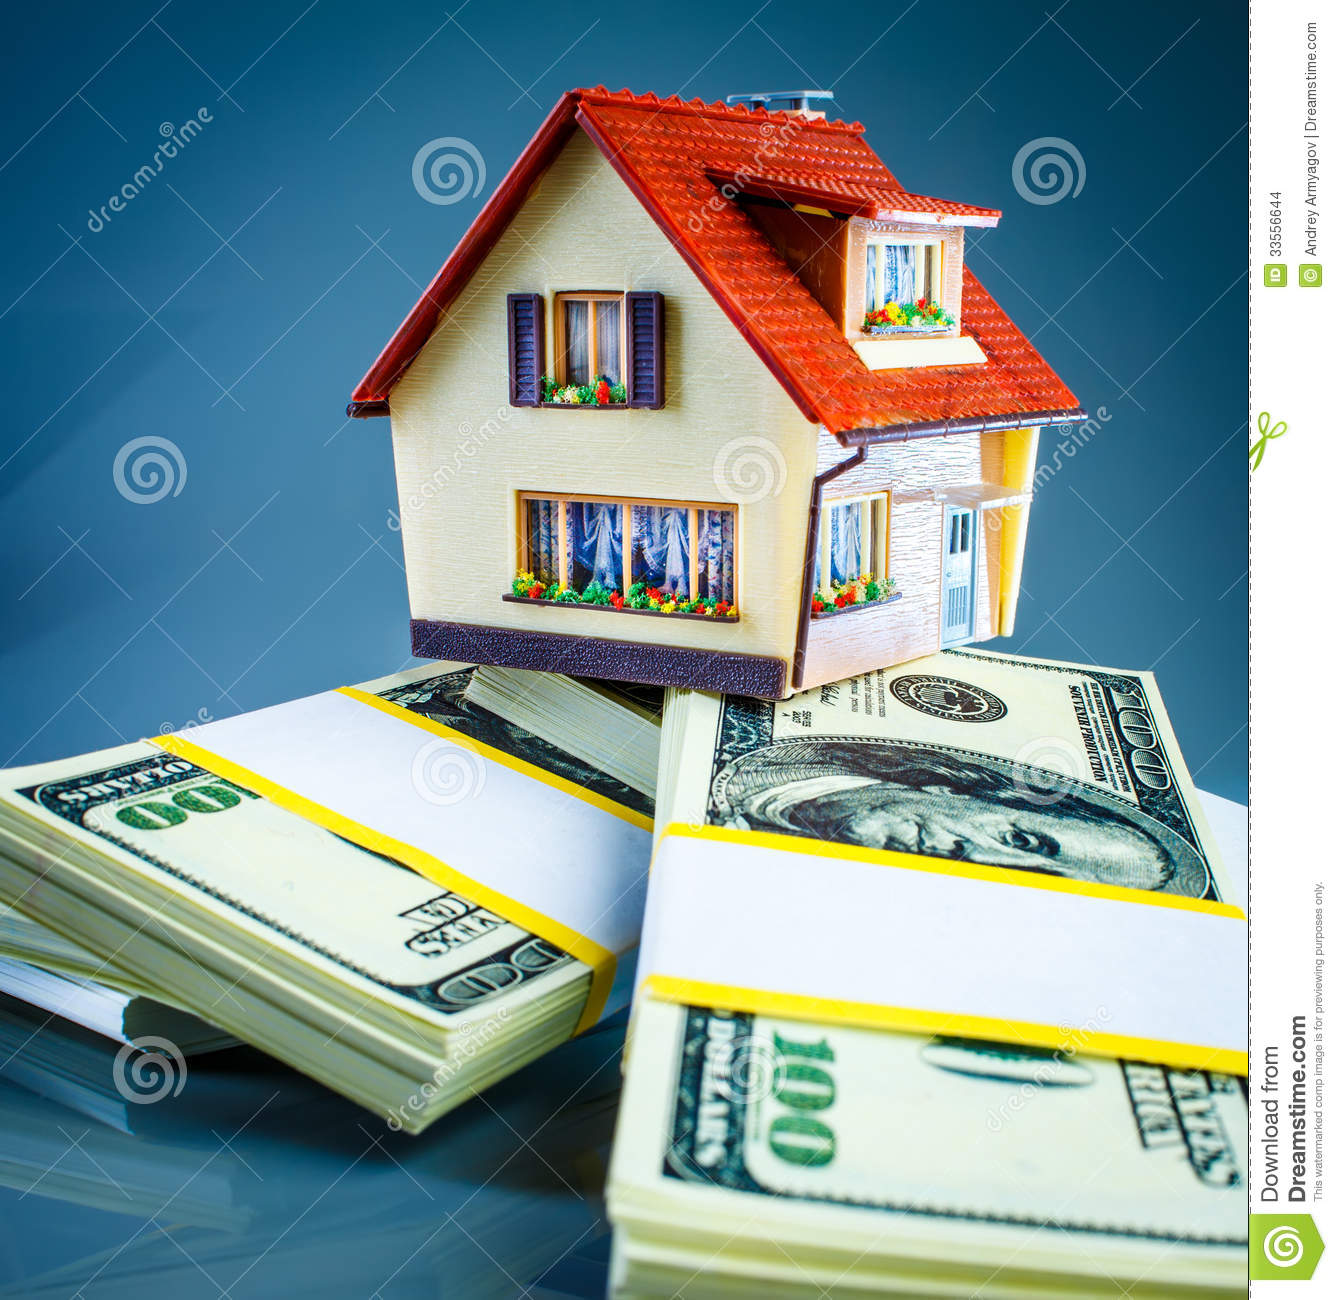 House On Packs Of Banknotes Stock Images - Image: 33556644